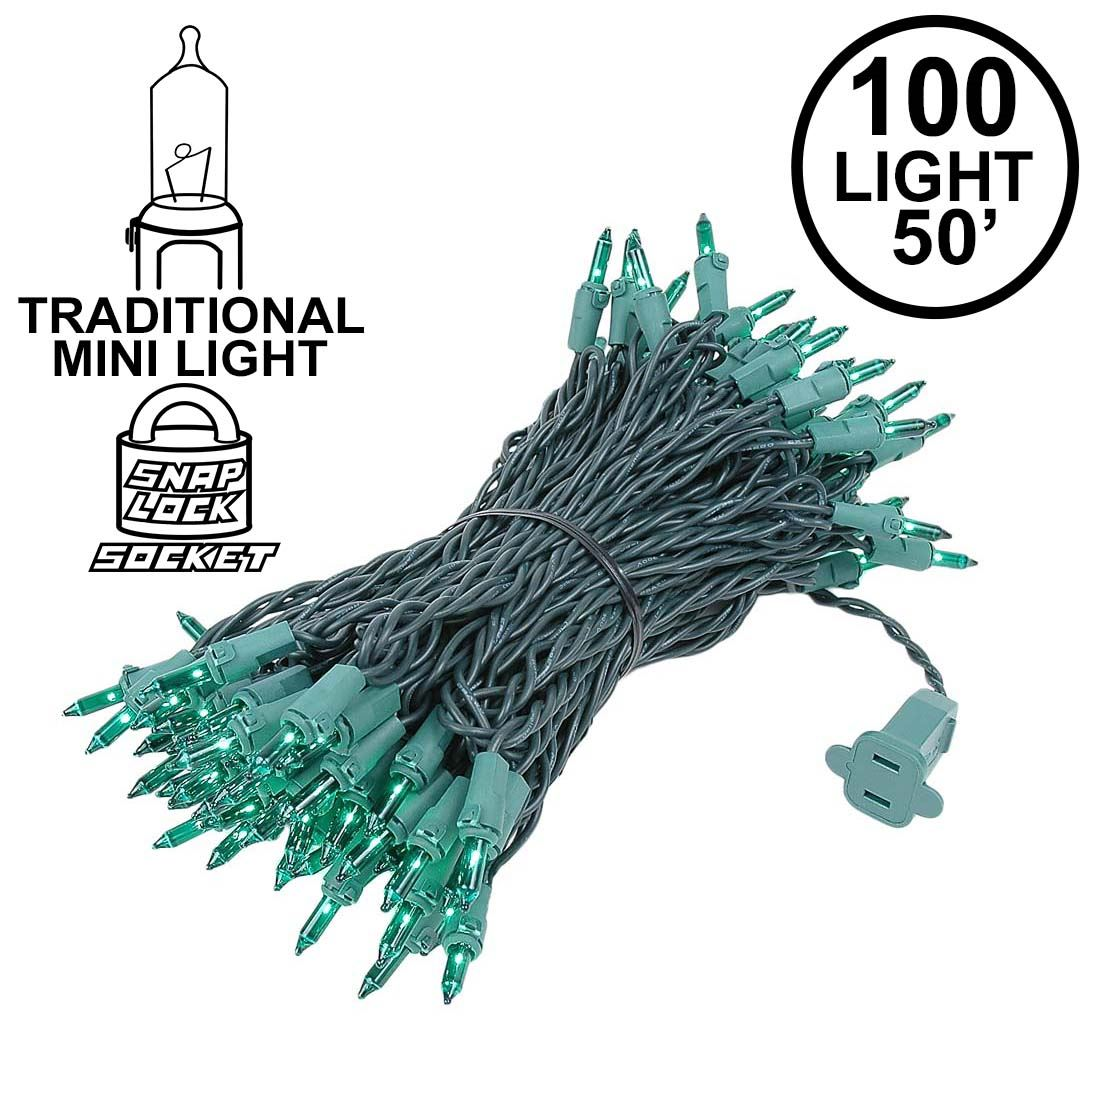 Picture of Green Christmas Mini Lights 100 Light 50 Feet Long on Green Wire